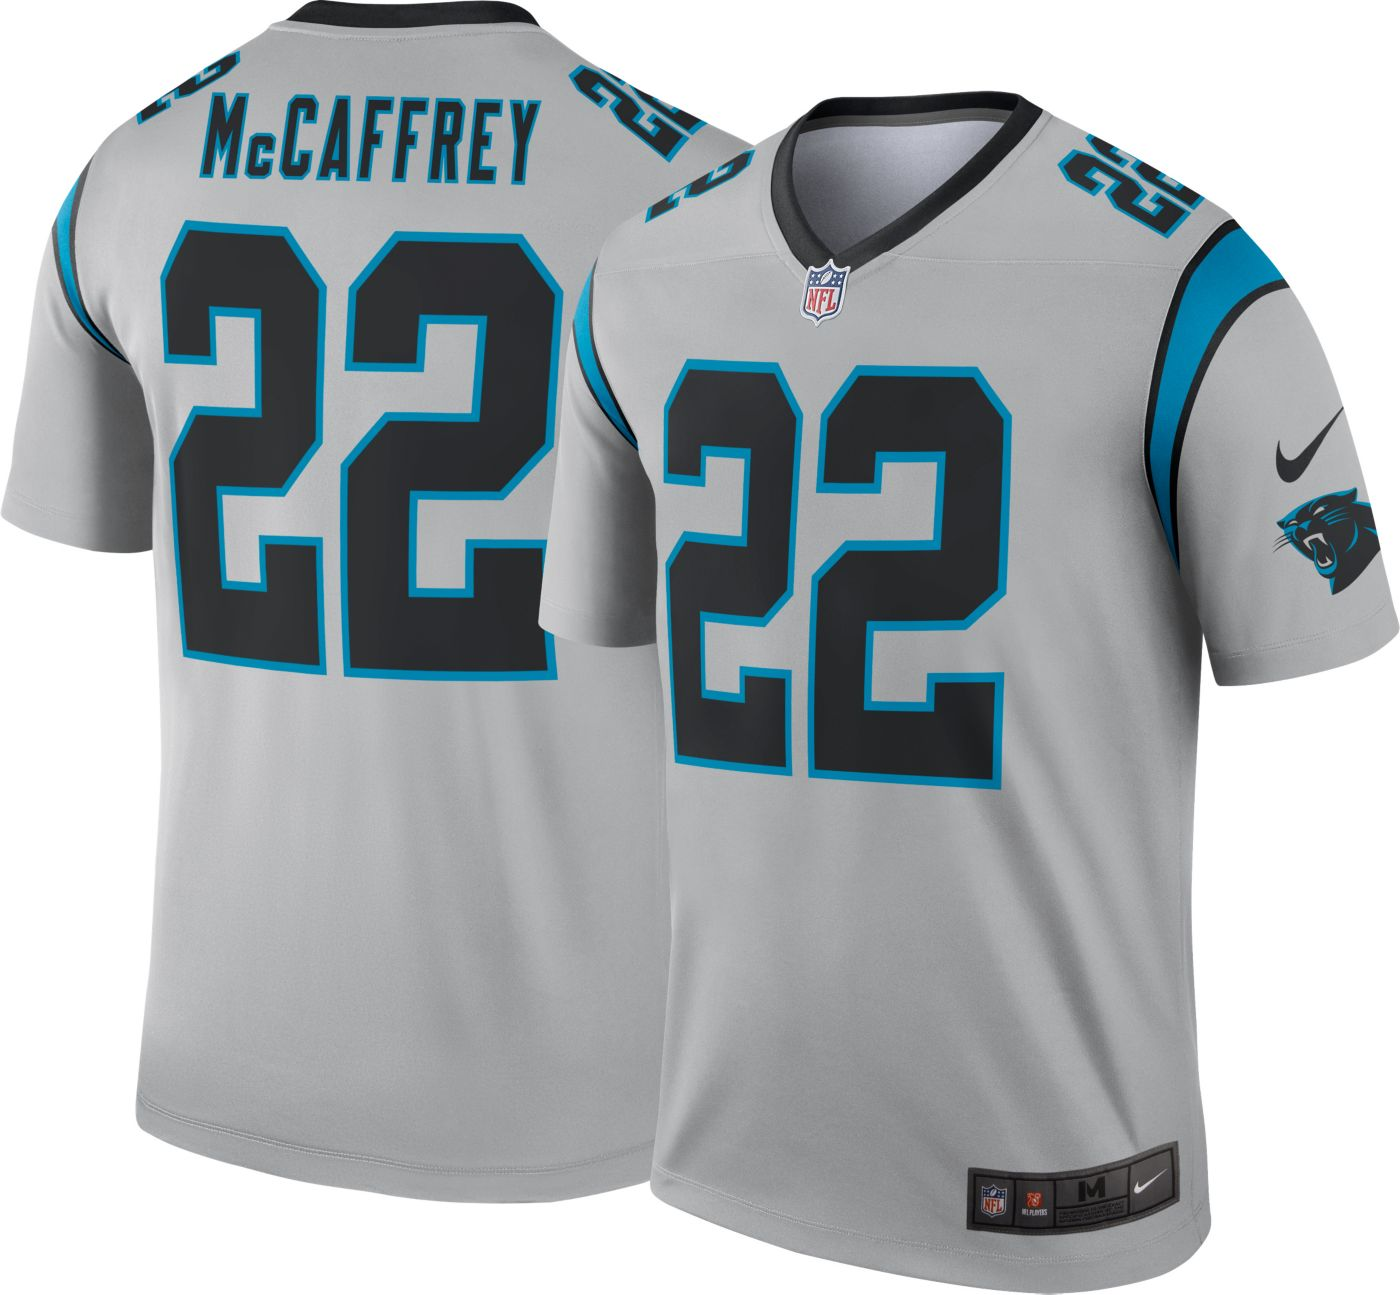 Nike Men's Alternate Legend Jersey Carolina Panthers Christian McCaffrey #22